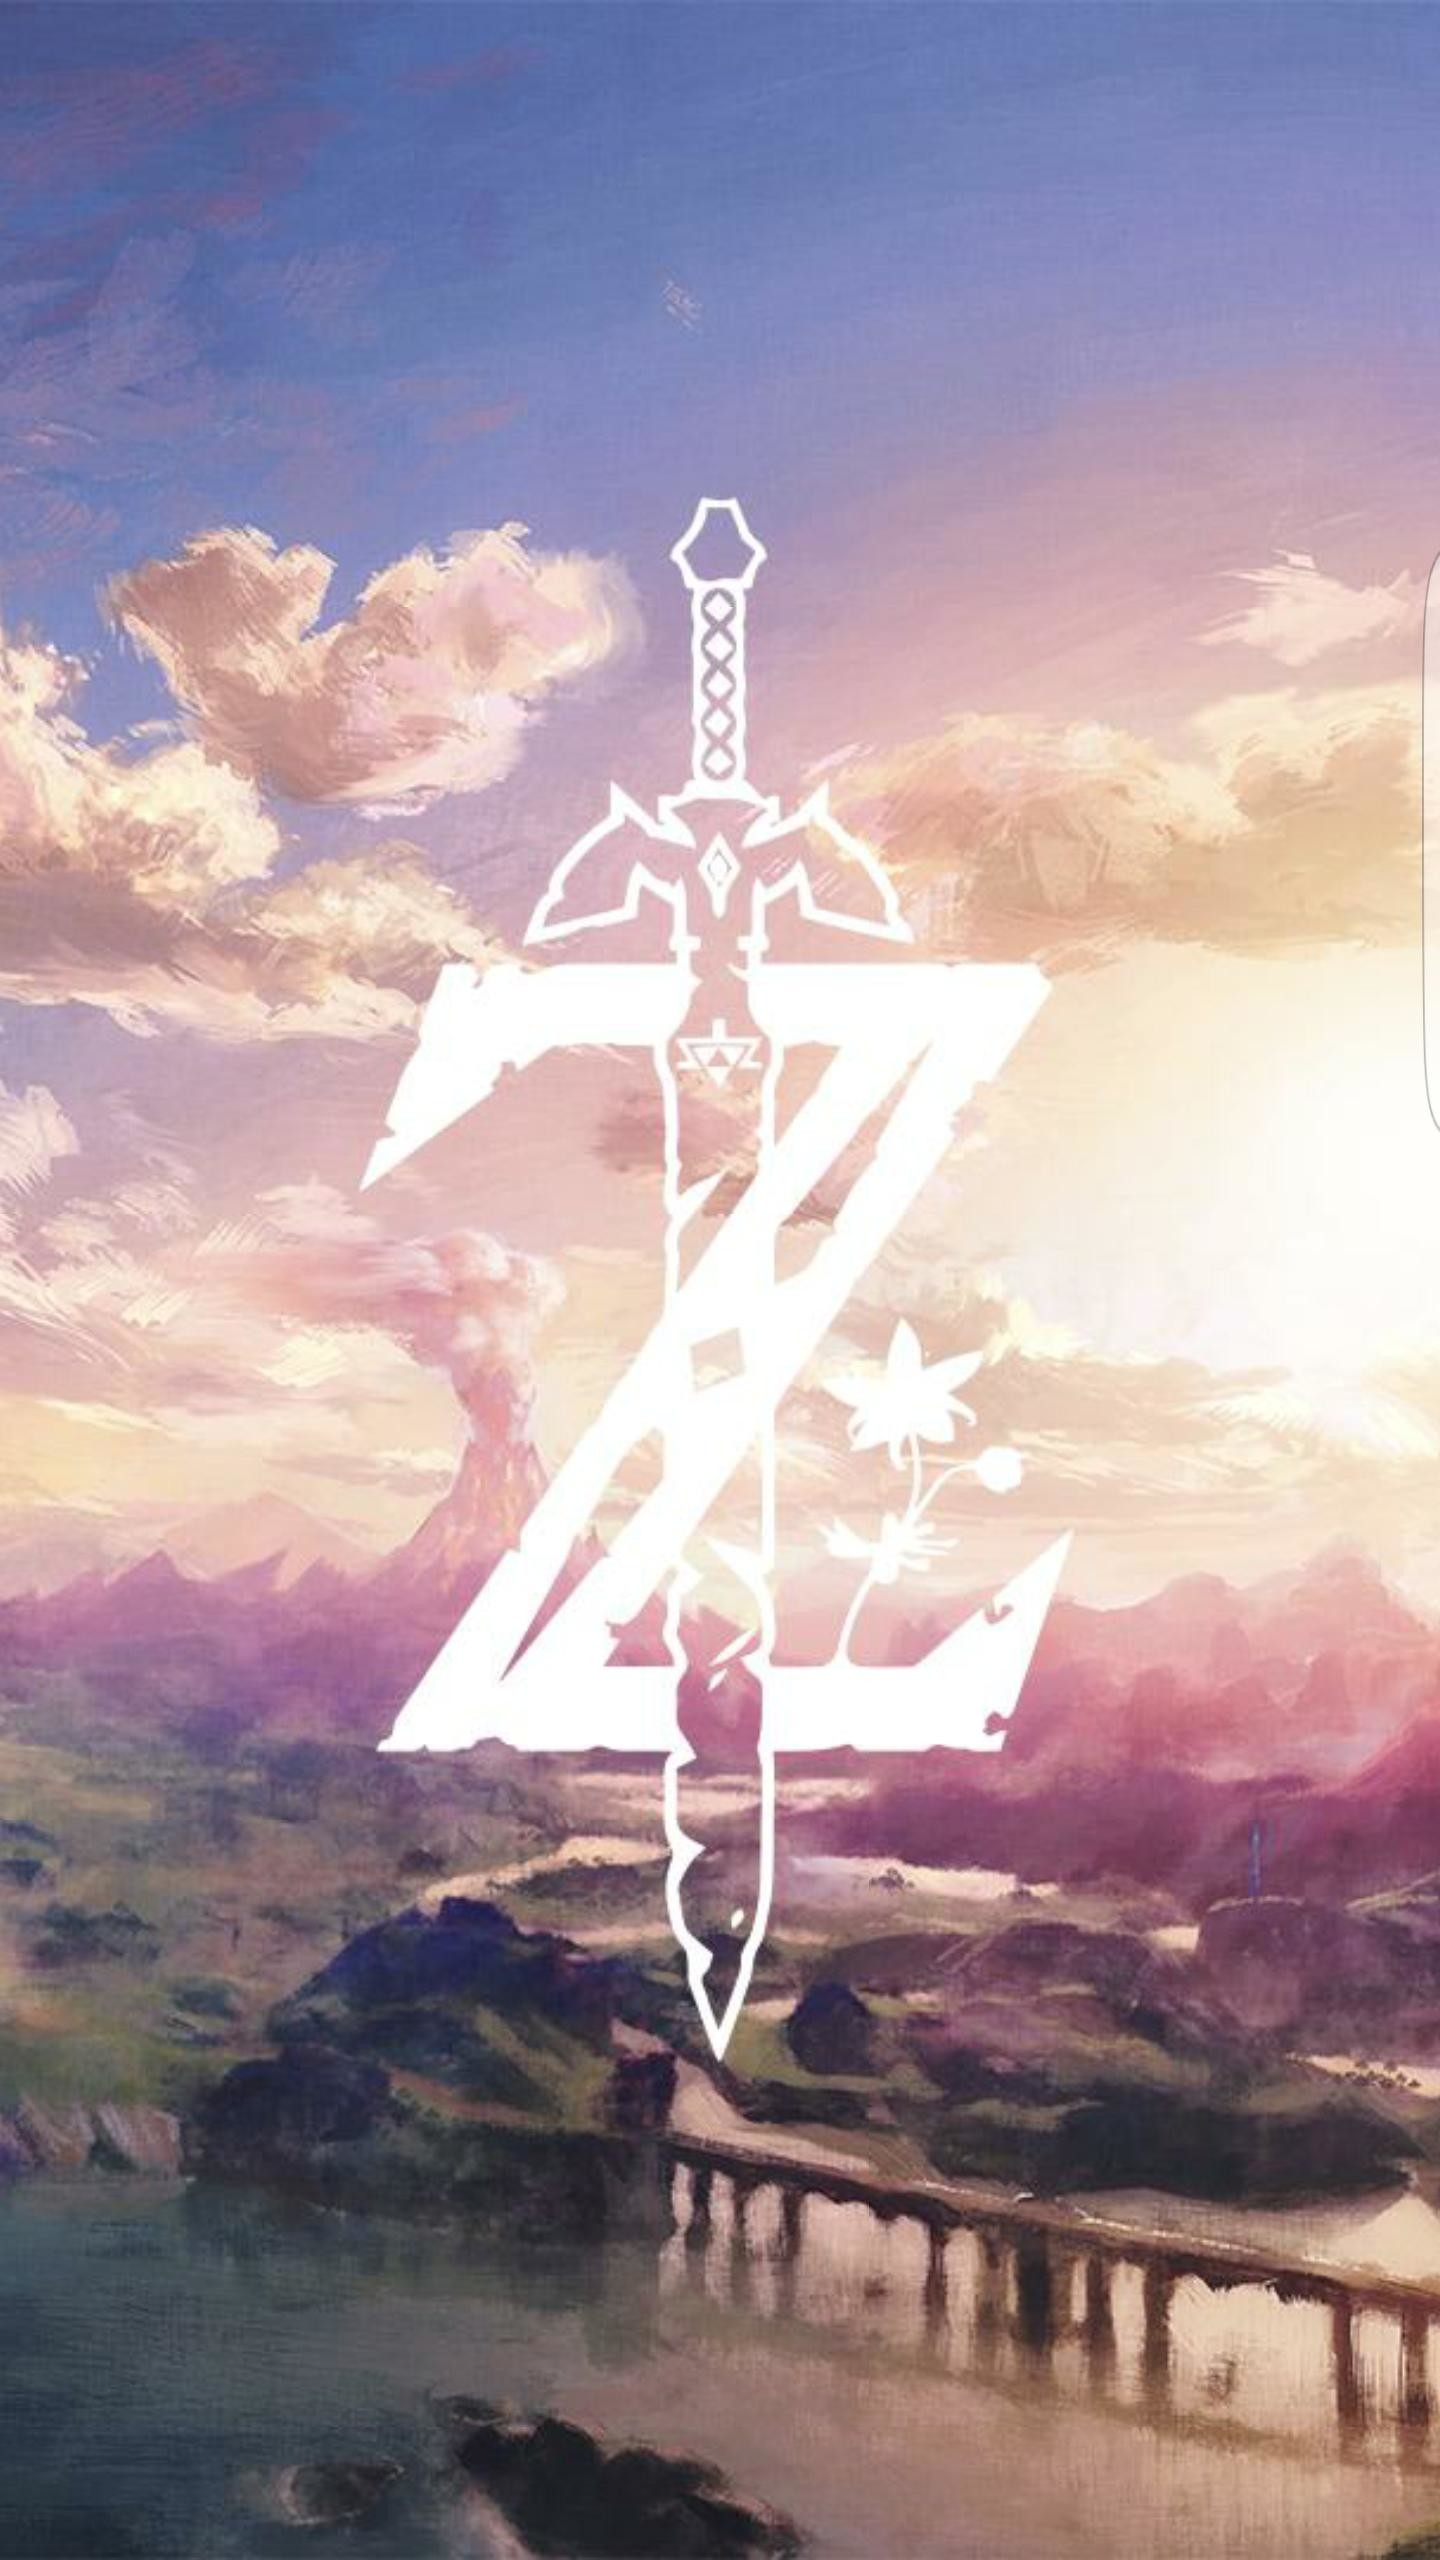 1440x2560 Can anyone find a wallpaper with just the Z and the Mastersword trough It  from the botw logo like In the picture in HD?